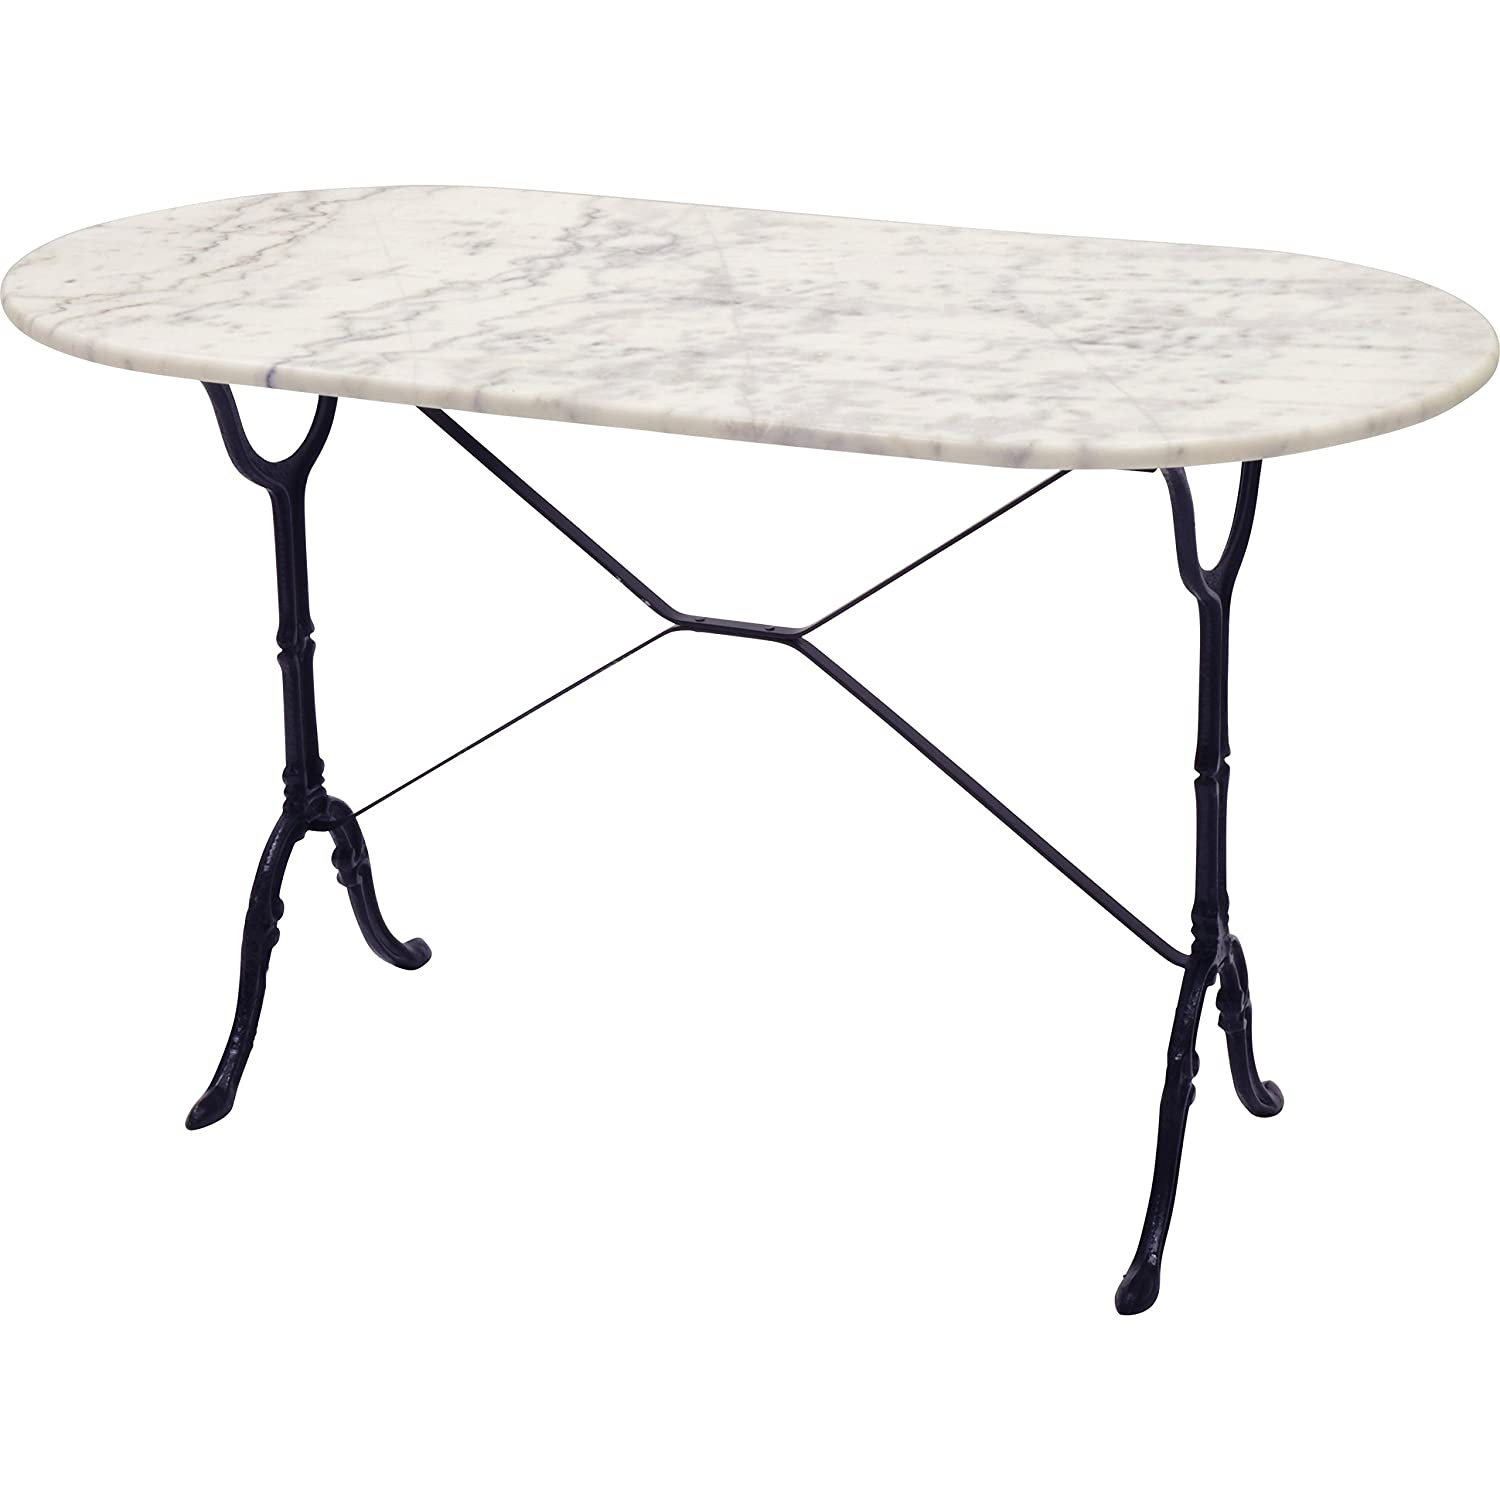 Lesli Table De Marbre Blanc 120 X 60 Cm Ovale Amazon Fr